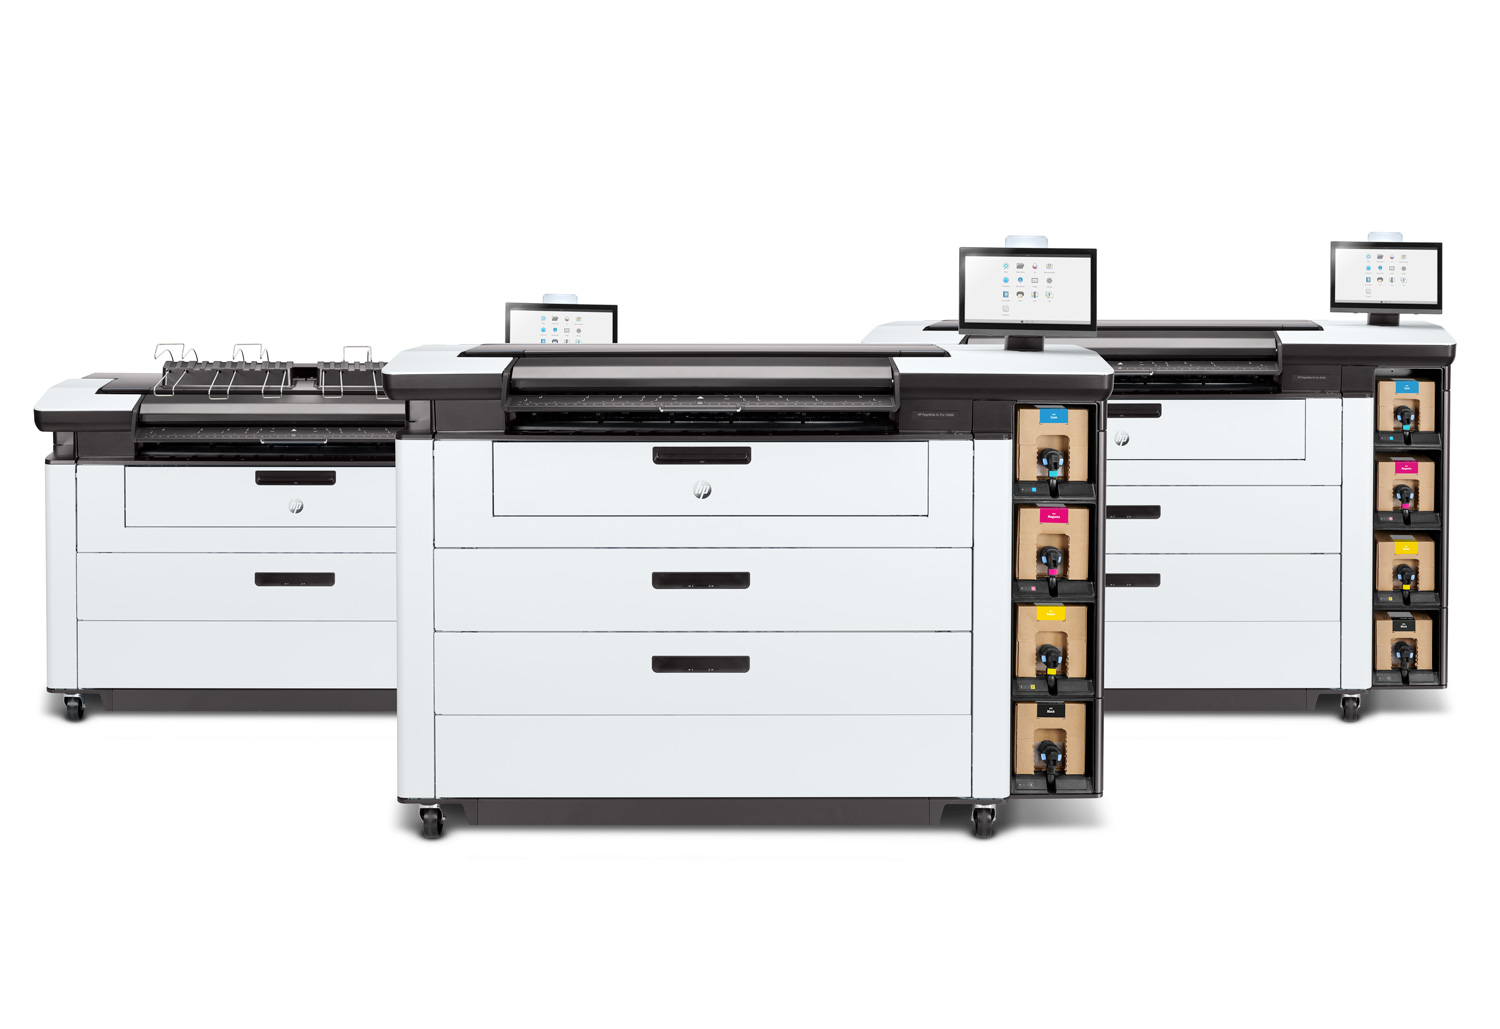 HP Pagewide XL Pro printers